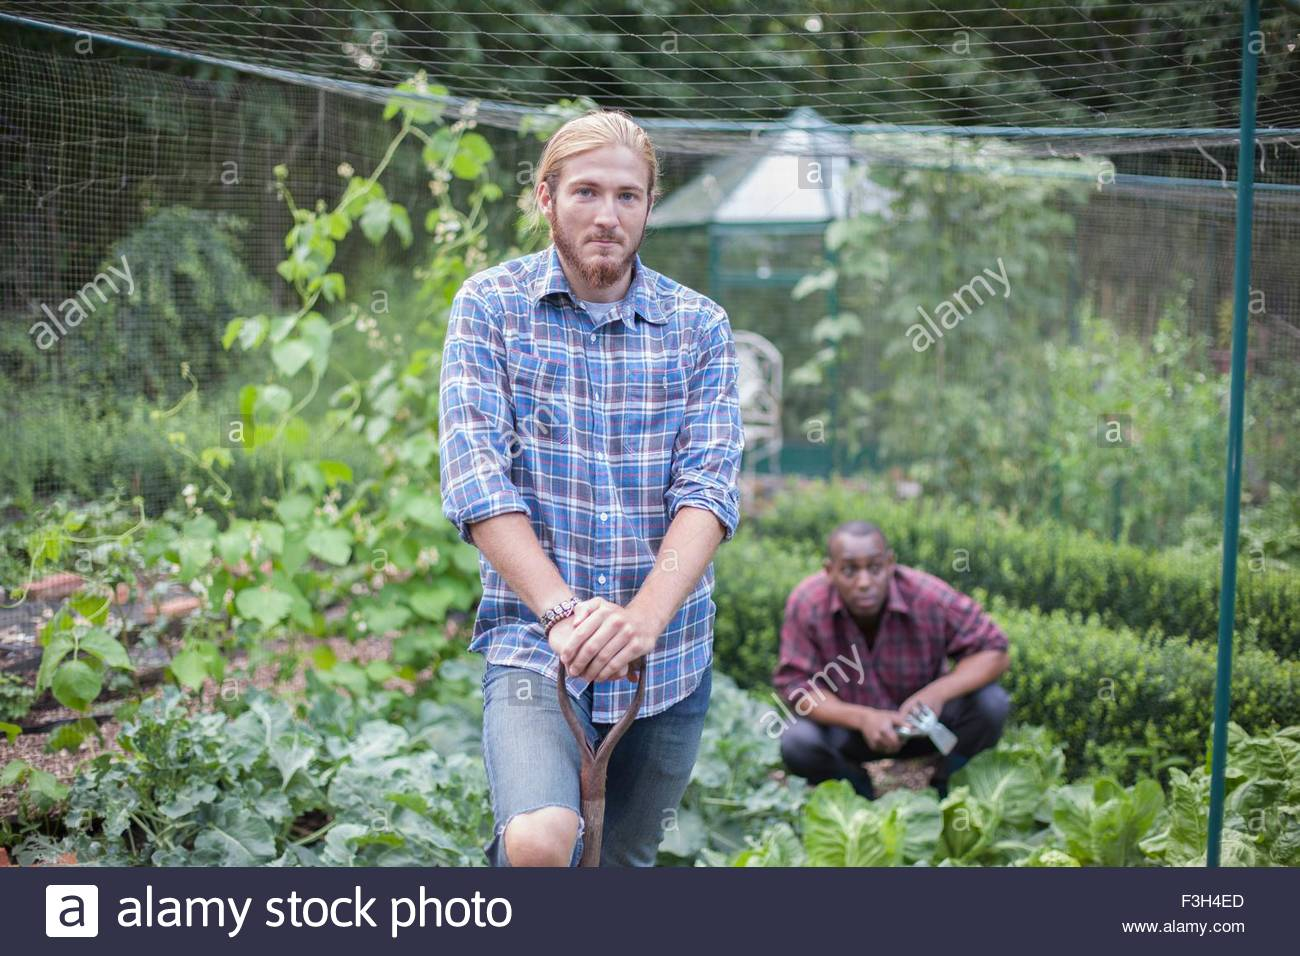 Friends working on allotment - Stock Image